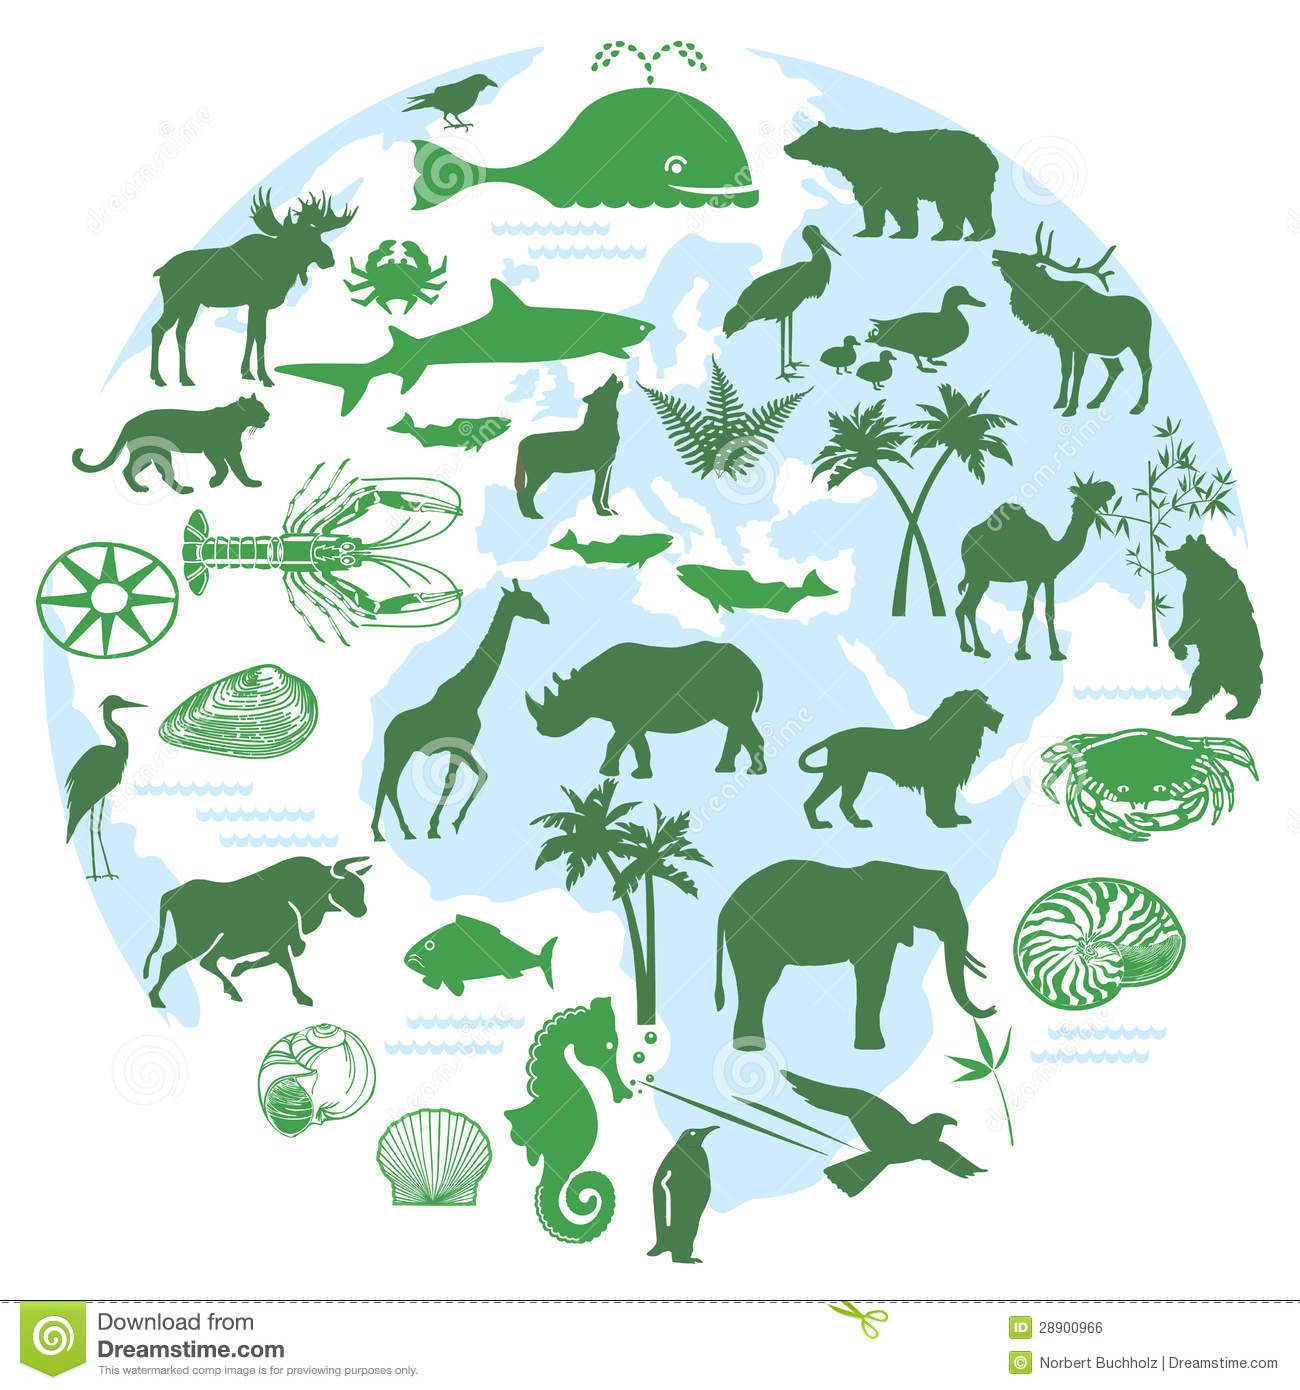 Biodiversity Is The Variety Of Life The Variety Of